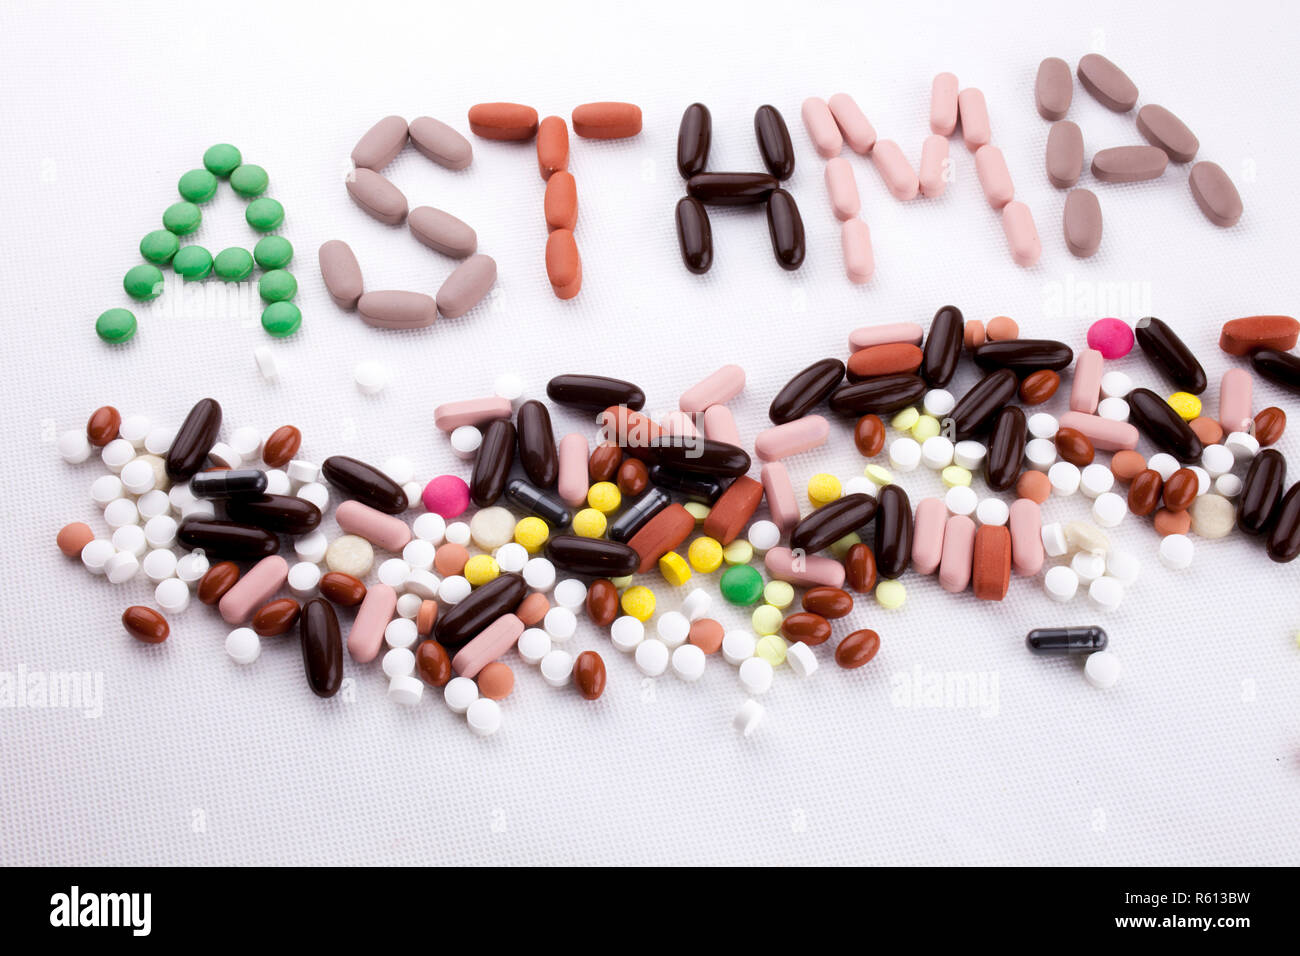 Hand writing text caption inspiration Medical care Health concept written with pills drugs capsule word asthma On white isolated background with copy space Stock Photo